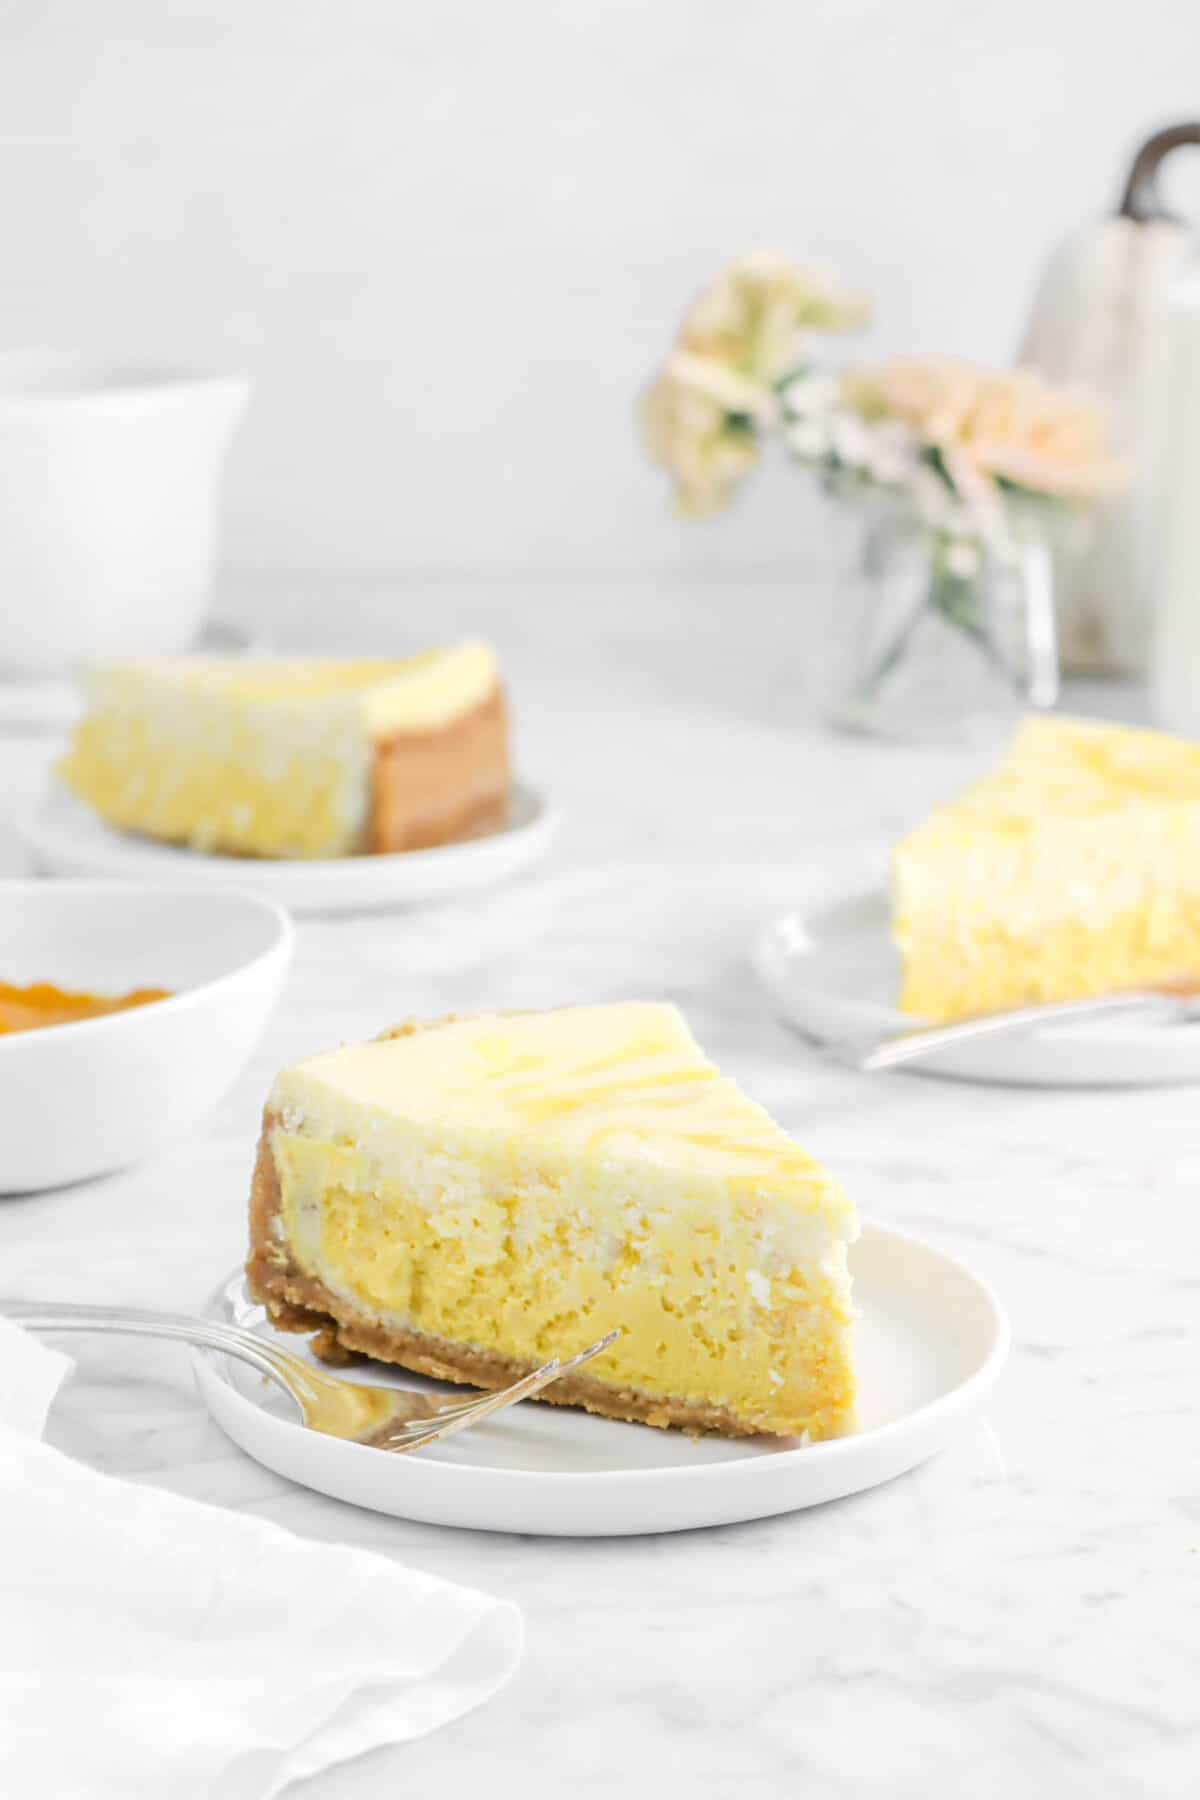 three slices of cheesecake on plates with flowers and white pumpkin behind